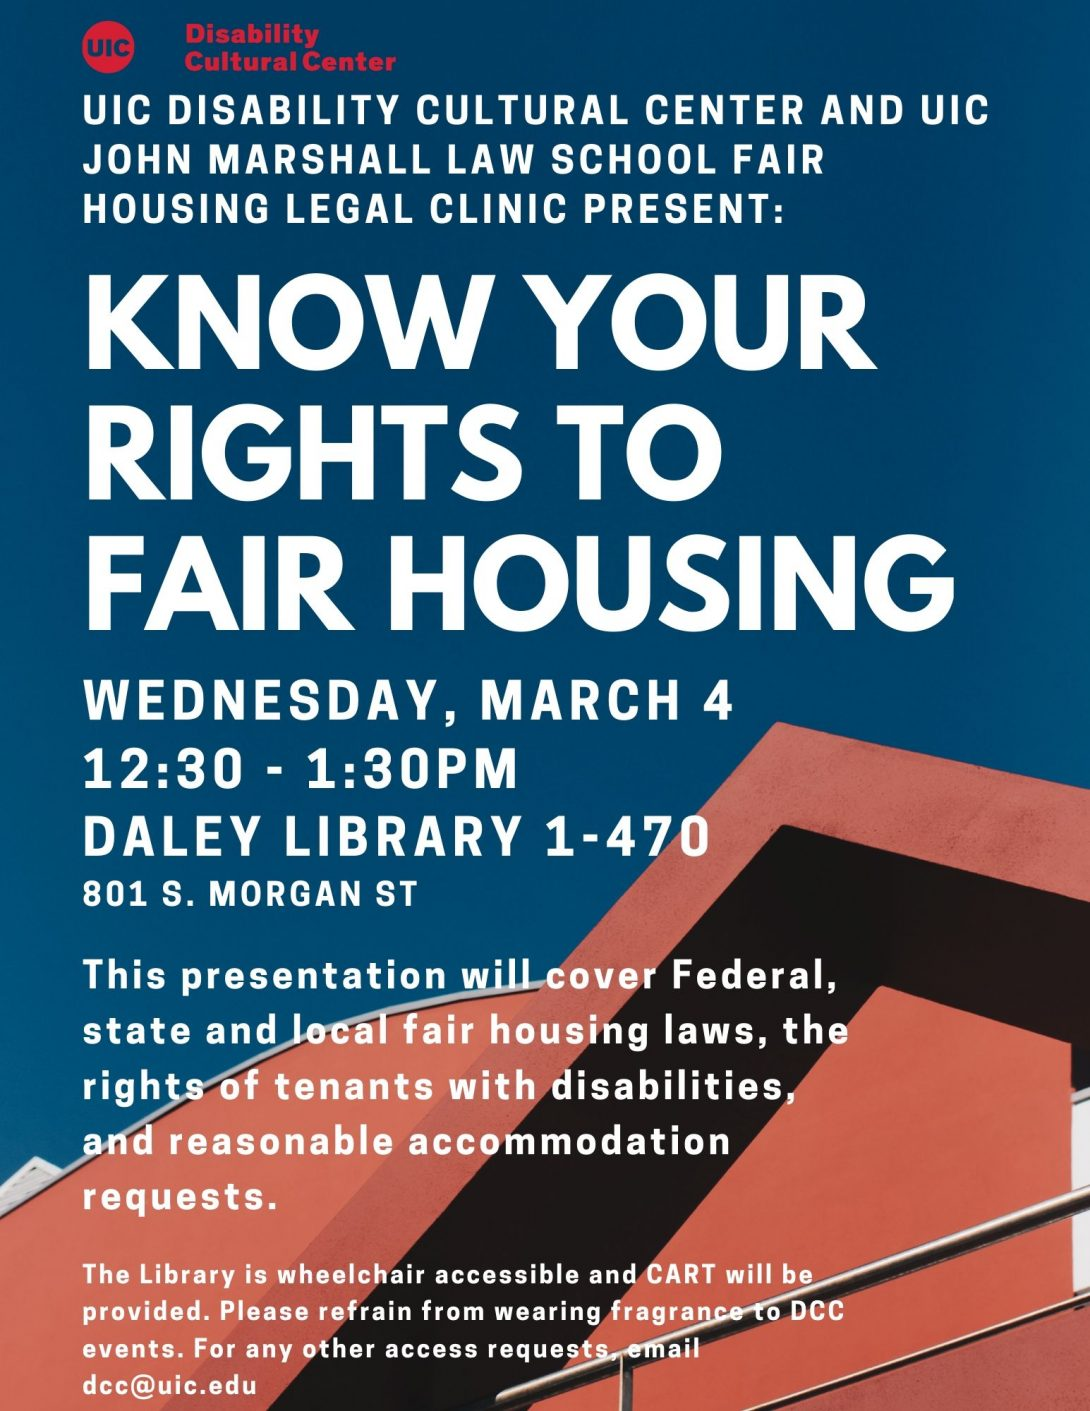 Know Your Rights to Fair Housing flyer